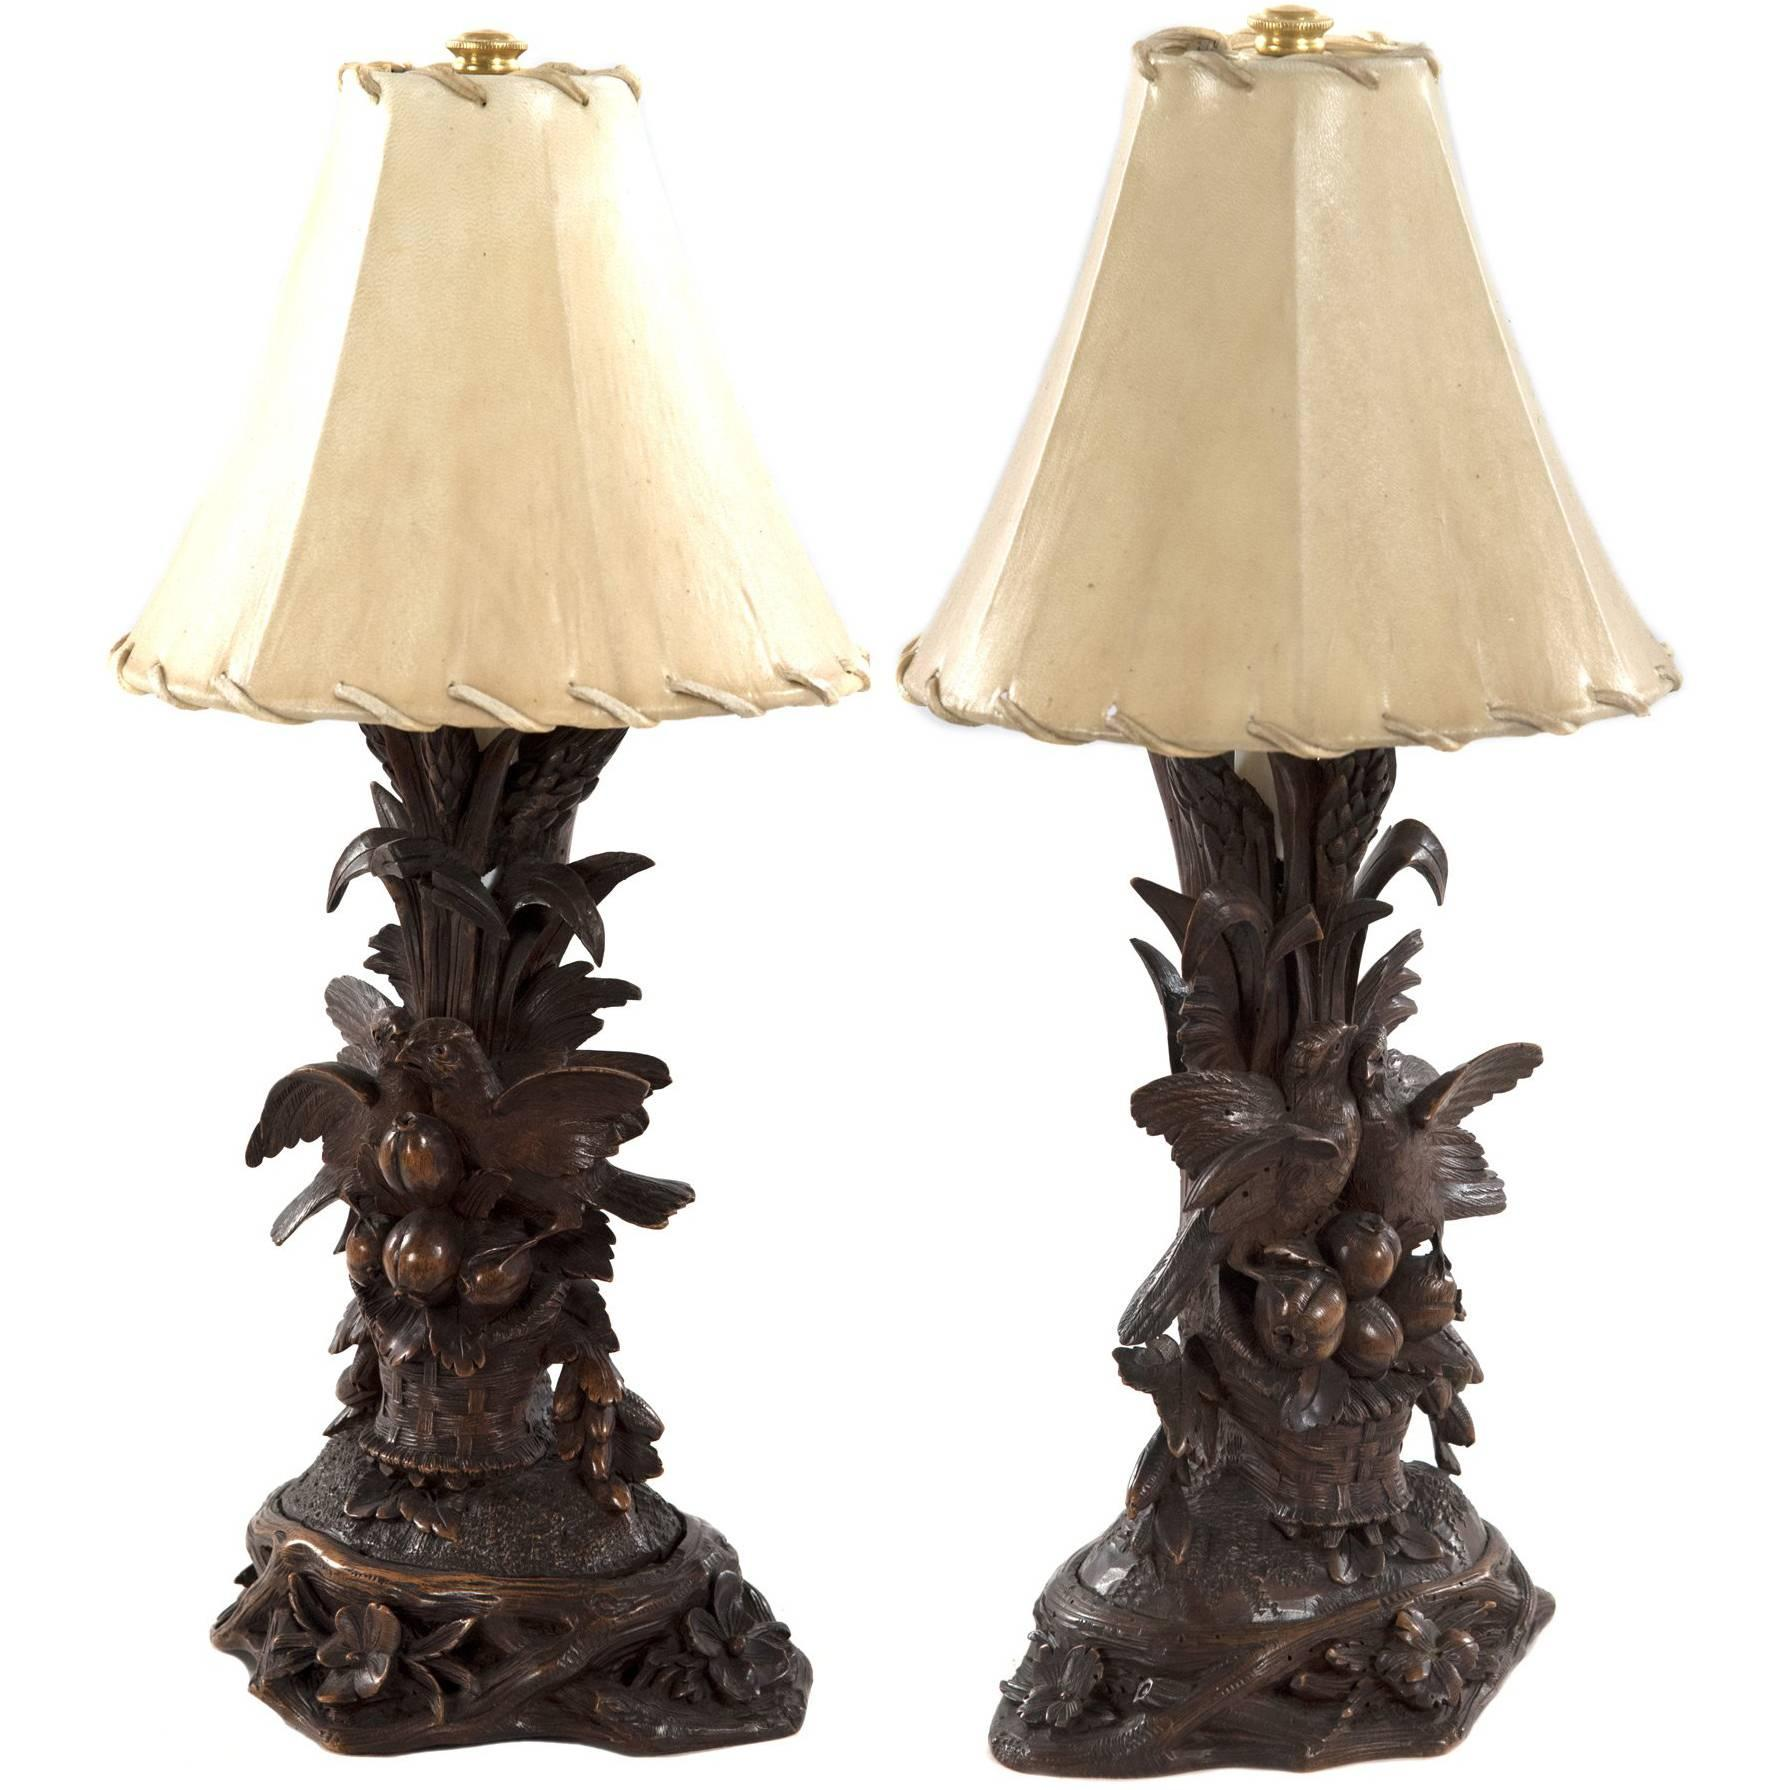 Pair of 19th Century Black Forest Carved Wood Bird Table L&s  sc 1 st  1stDibs & Black Forest Lighting u0026 Light Fixtures - 23 For Sale at 1stdibs azcodes.com